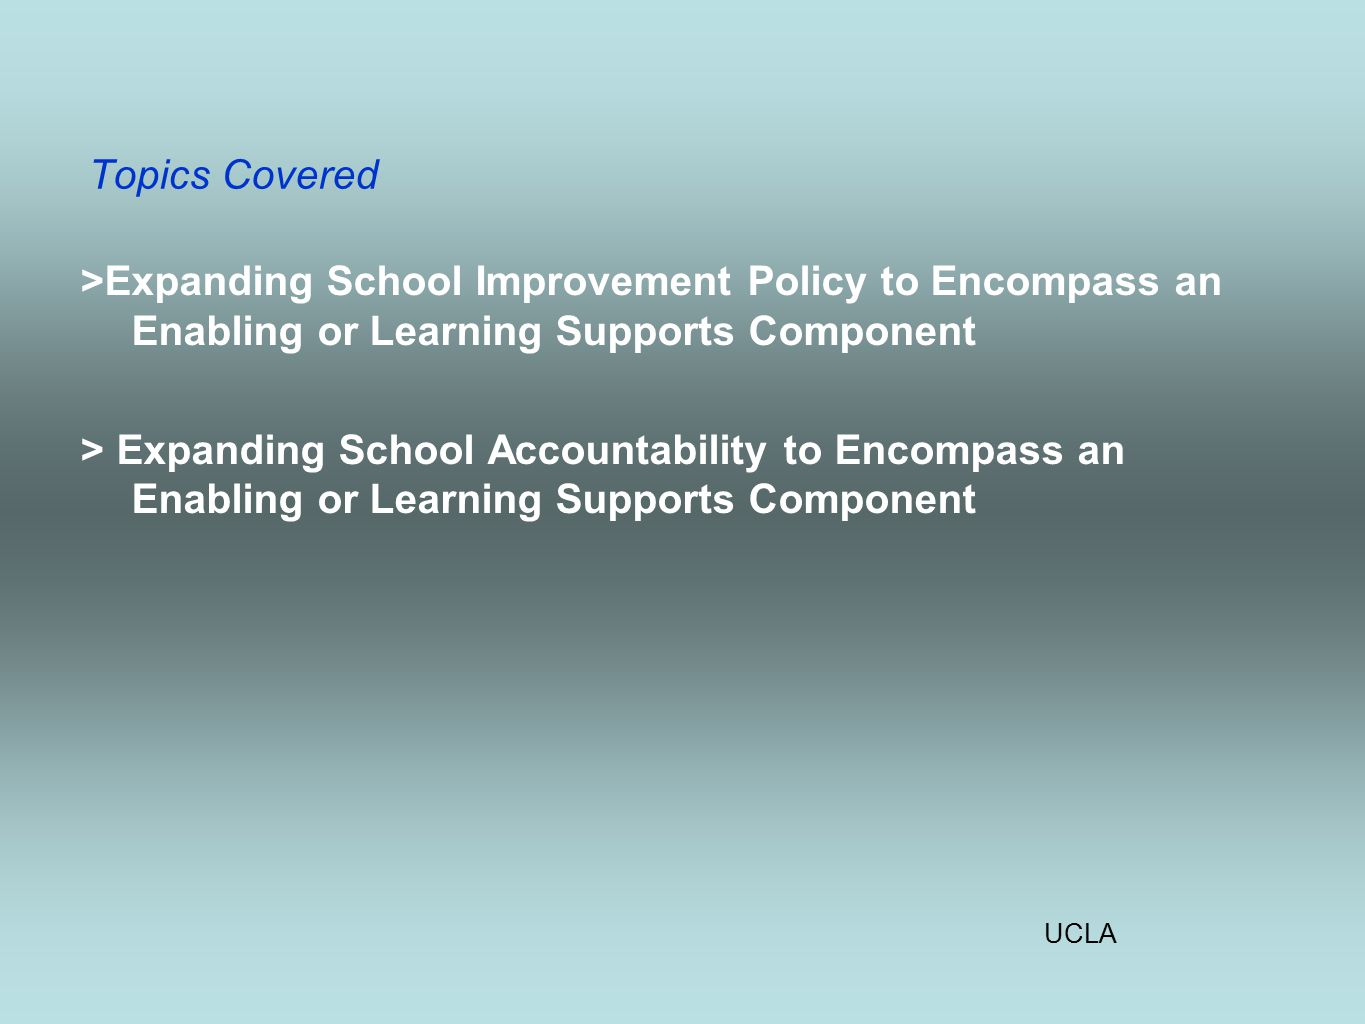 UCLA Topics Covered >Expanding School Improvement Policy to Encompass an Enabling or Learning Supports Component > Expanding School Accountability to Encompass an Enabling or Learning Supports Component